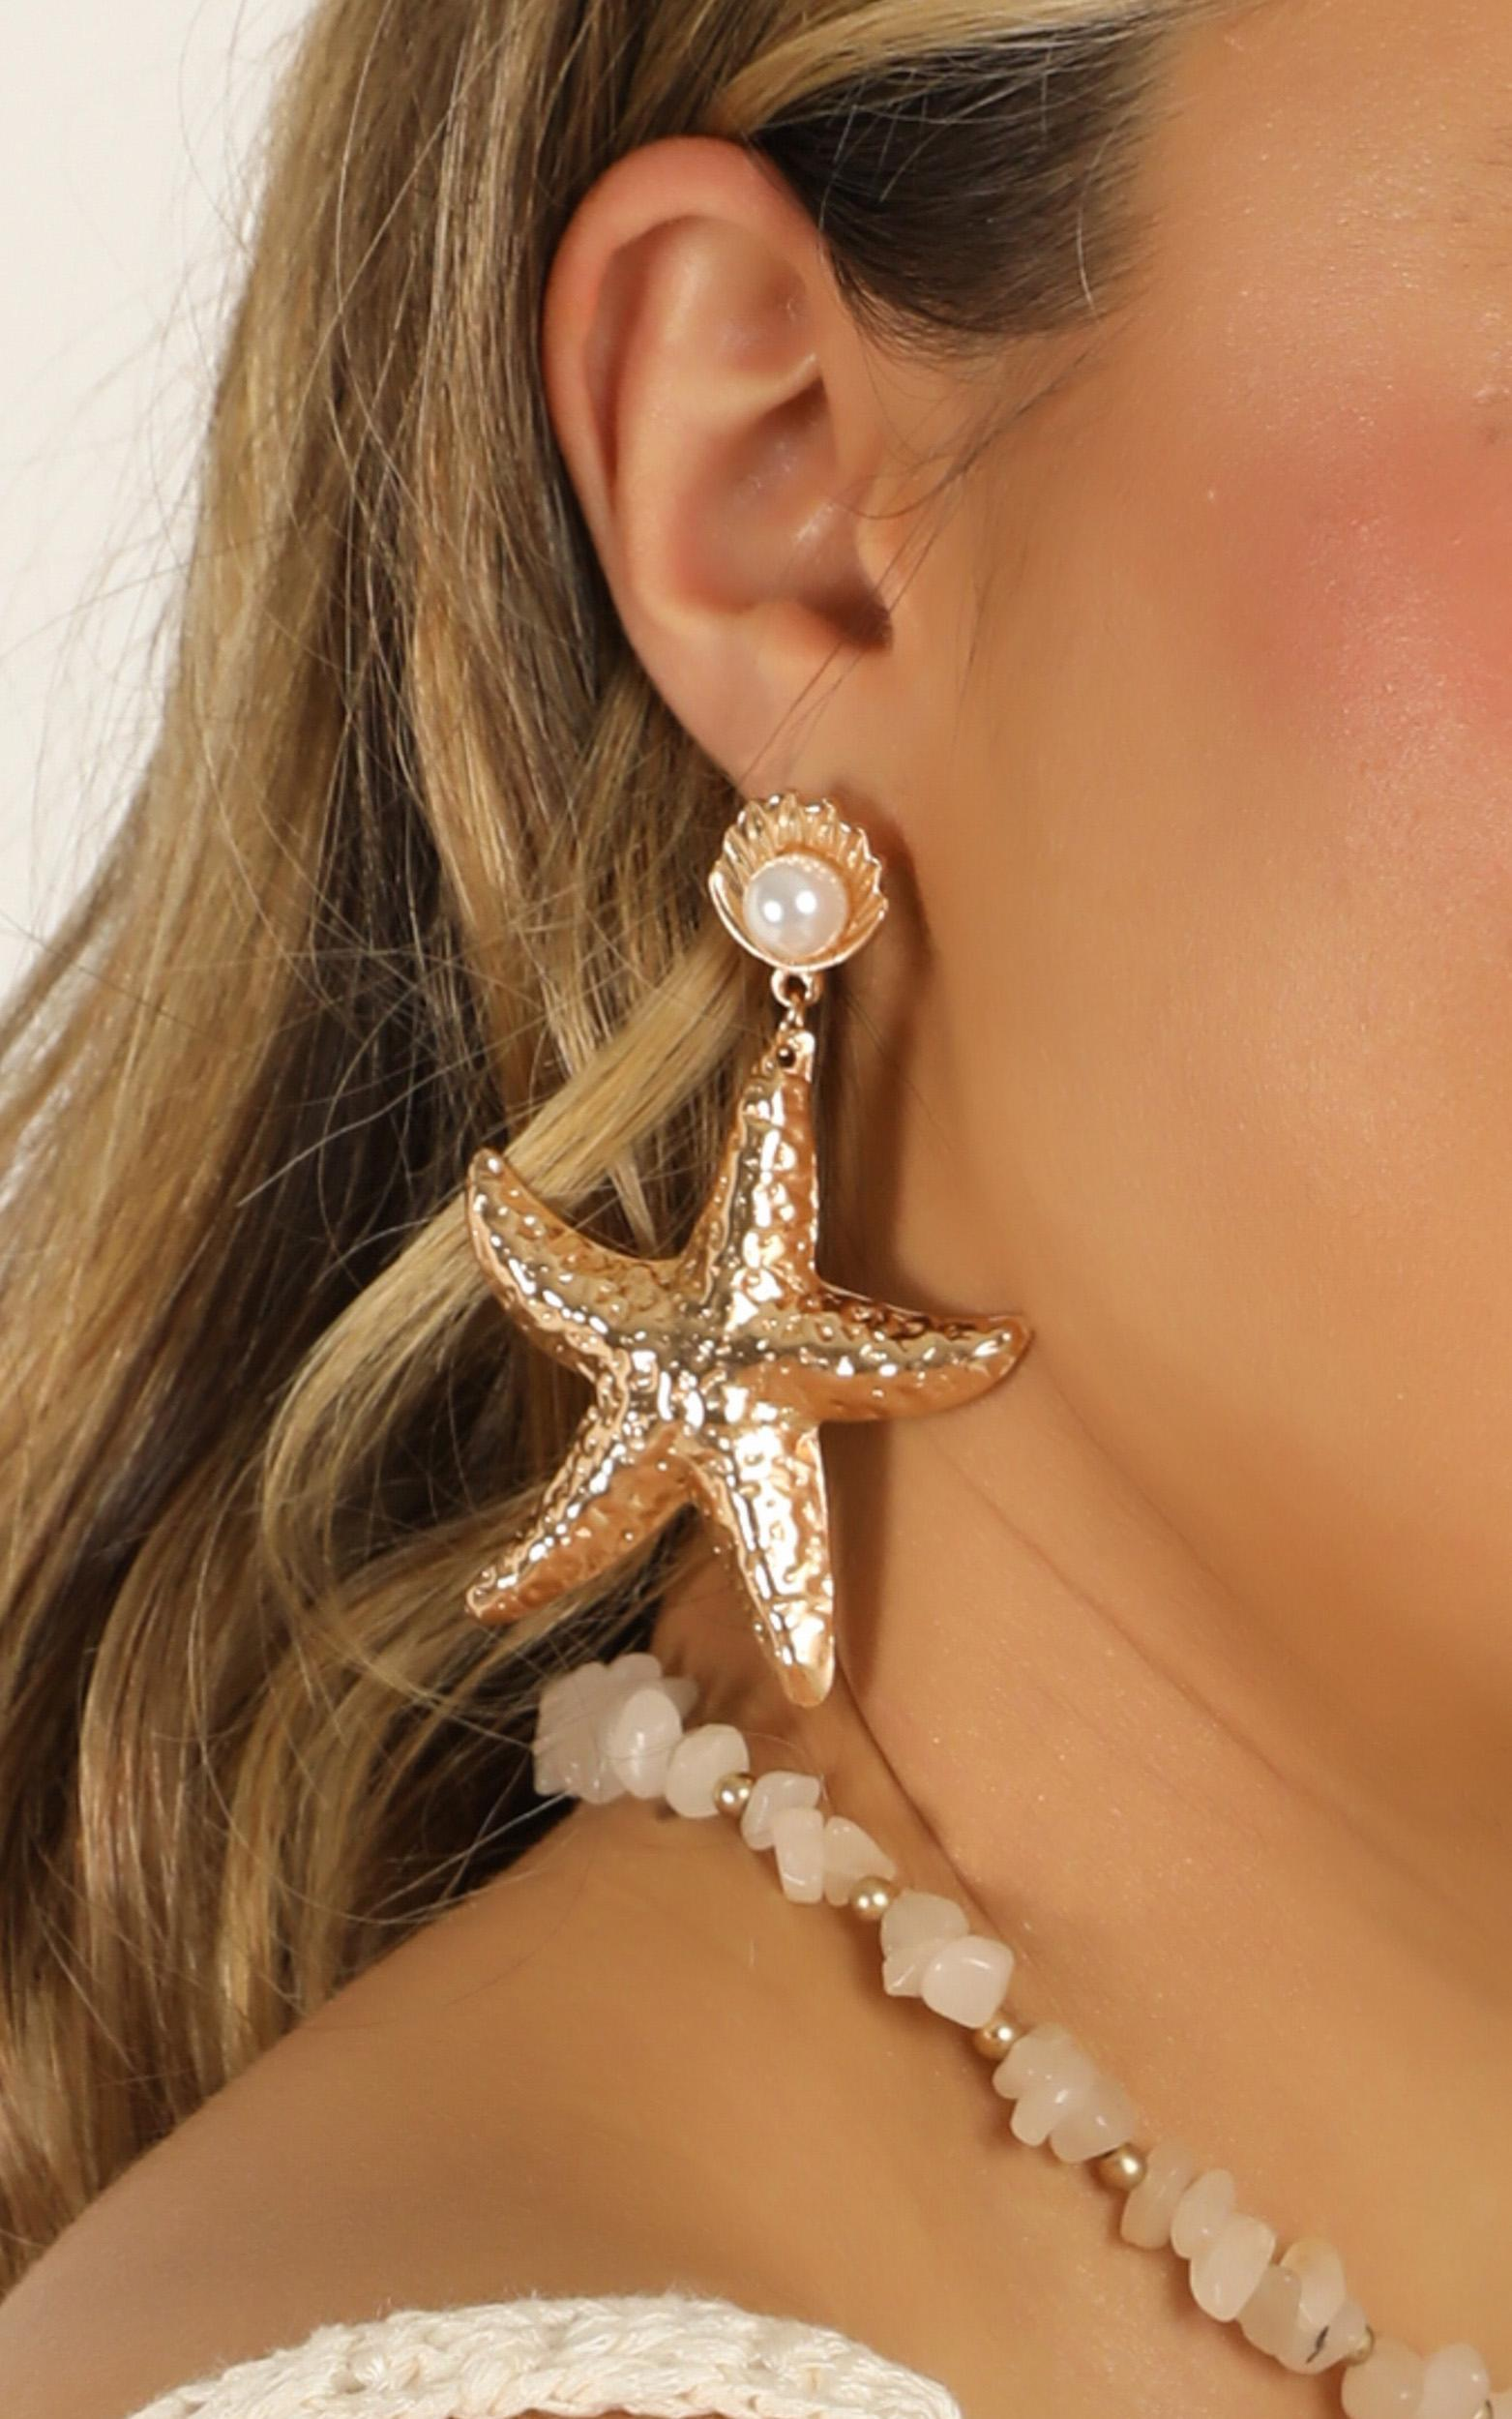 Days Like This Earrings In Gold, , hi-res image number null